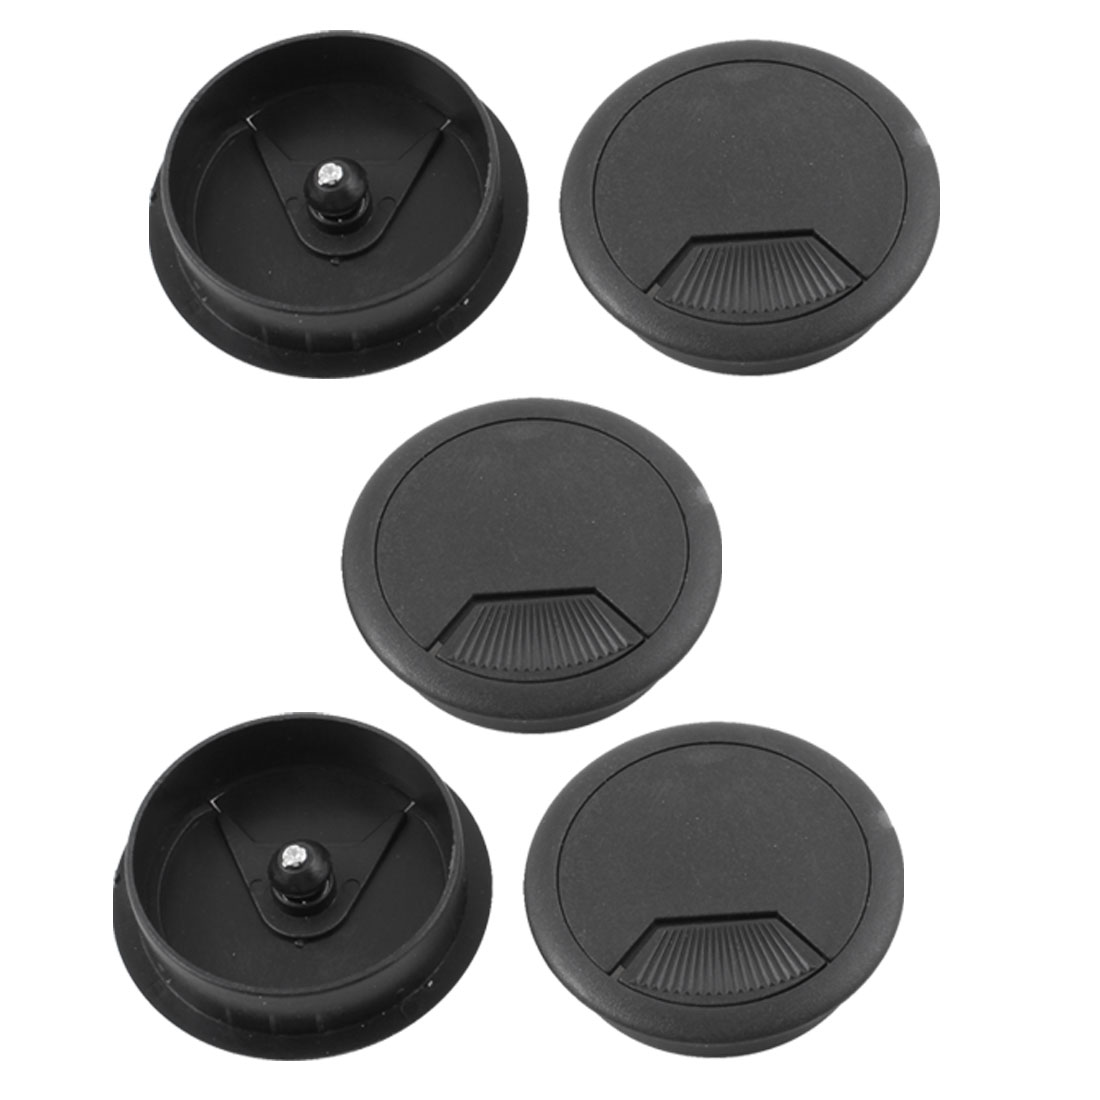 5 Pcs Home Office Desk Table Computer 60mm Cable Cord Grommet Hole Black